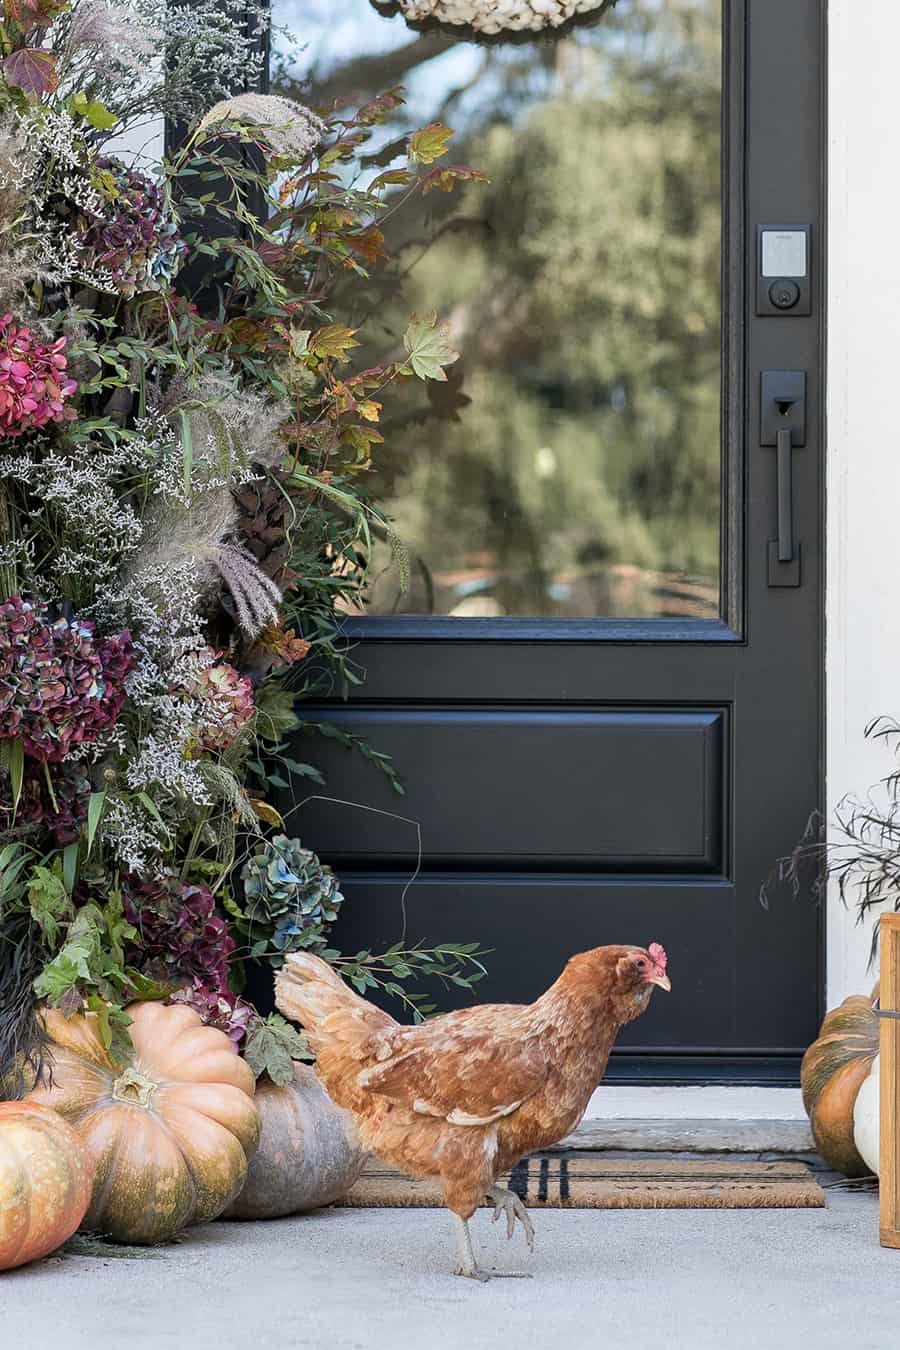 Chicken on front porch for fall